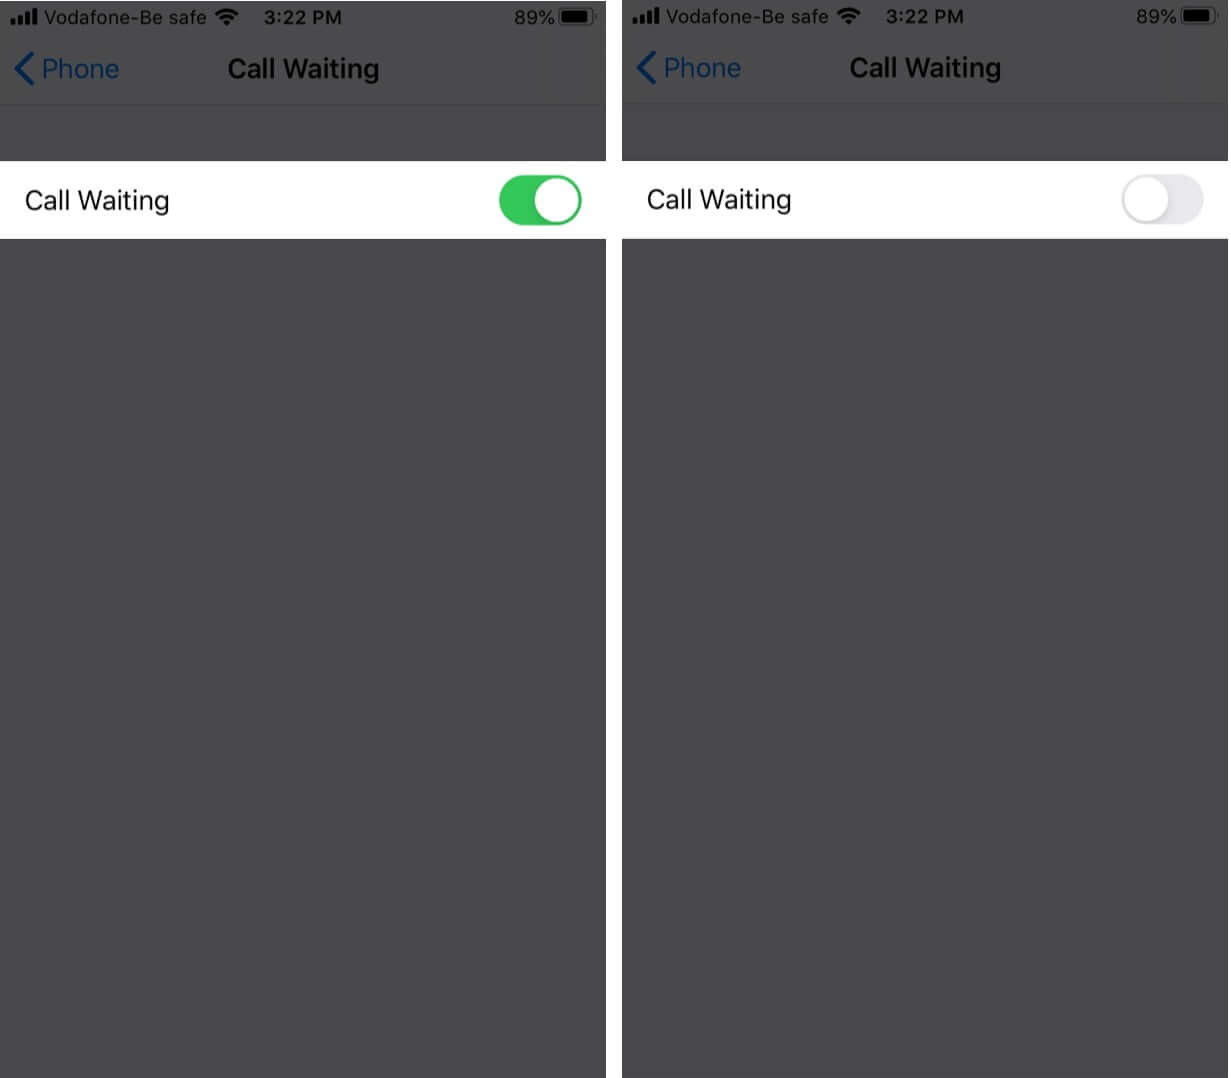 Disable call waiting on iPhone